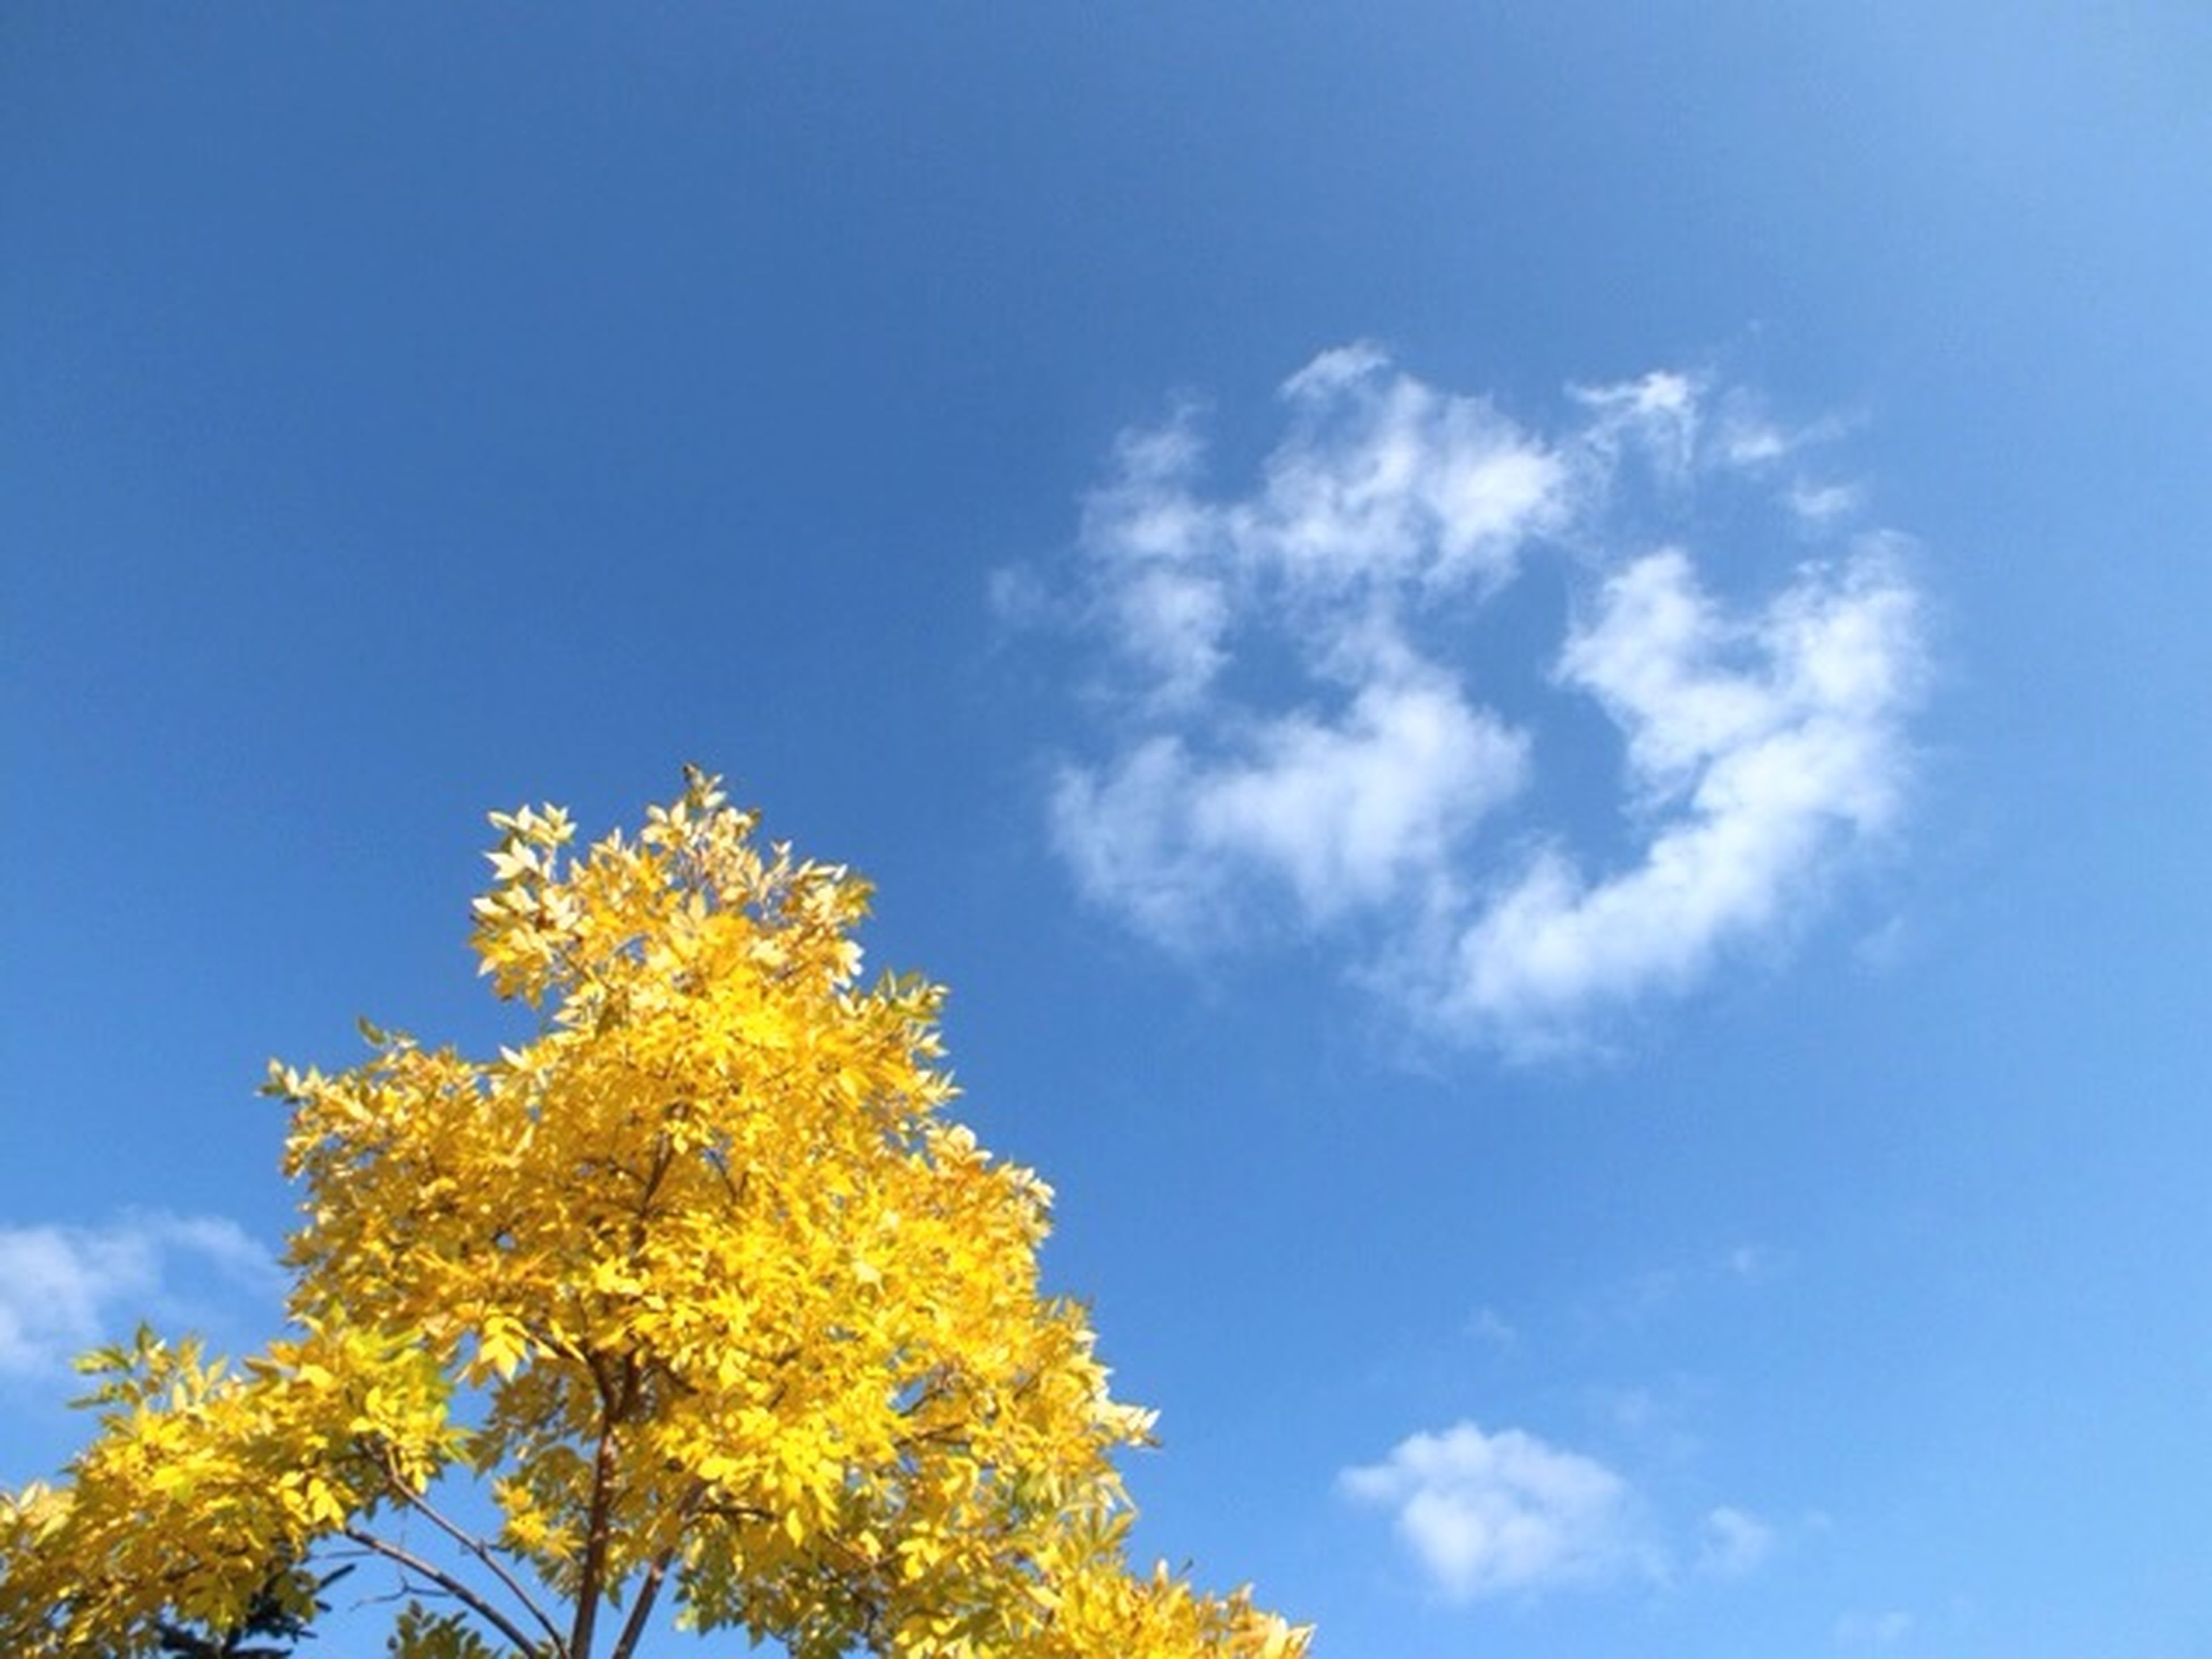 low angle view, sky, tree, blue, growth, beauty in nature, yellow, nature, cloud - sky, flower, tranquility, high section, cloud, scenics, branch, day, outdoors, treetop, no people, sunlight